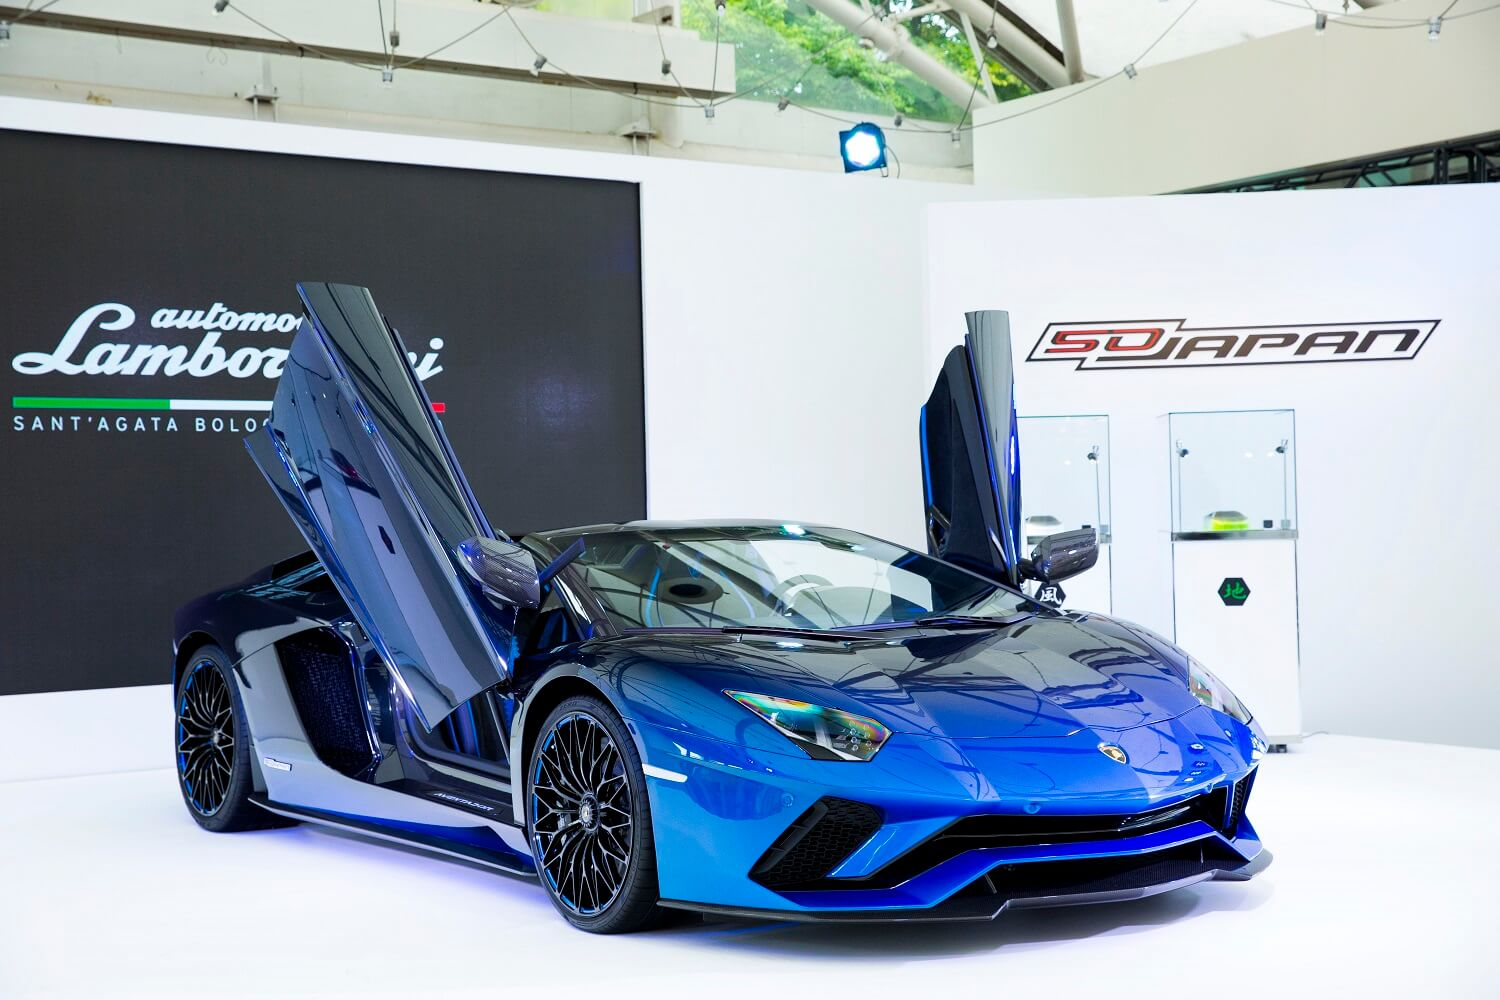 Bosch09 - Aventador-S-Roadtser-50th-Anniversary-Japan